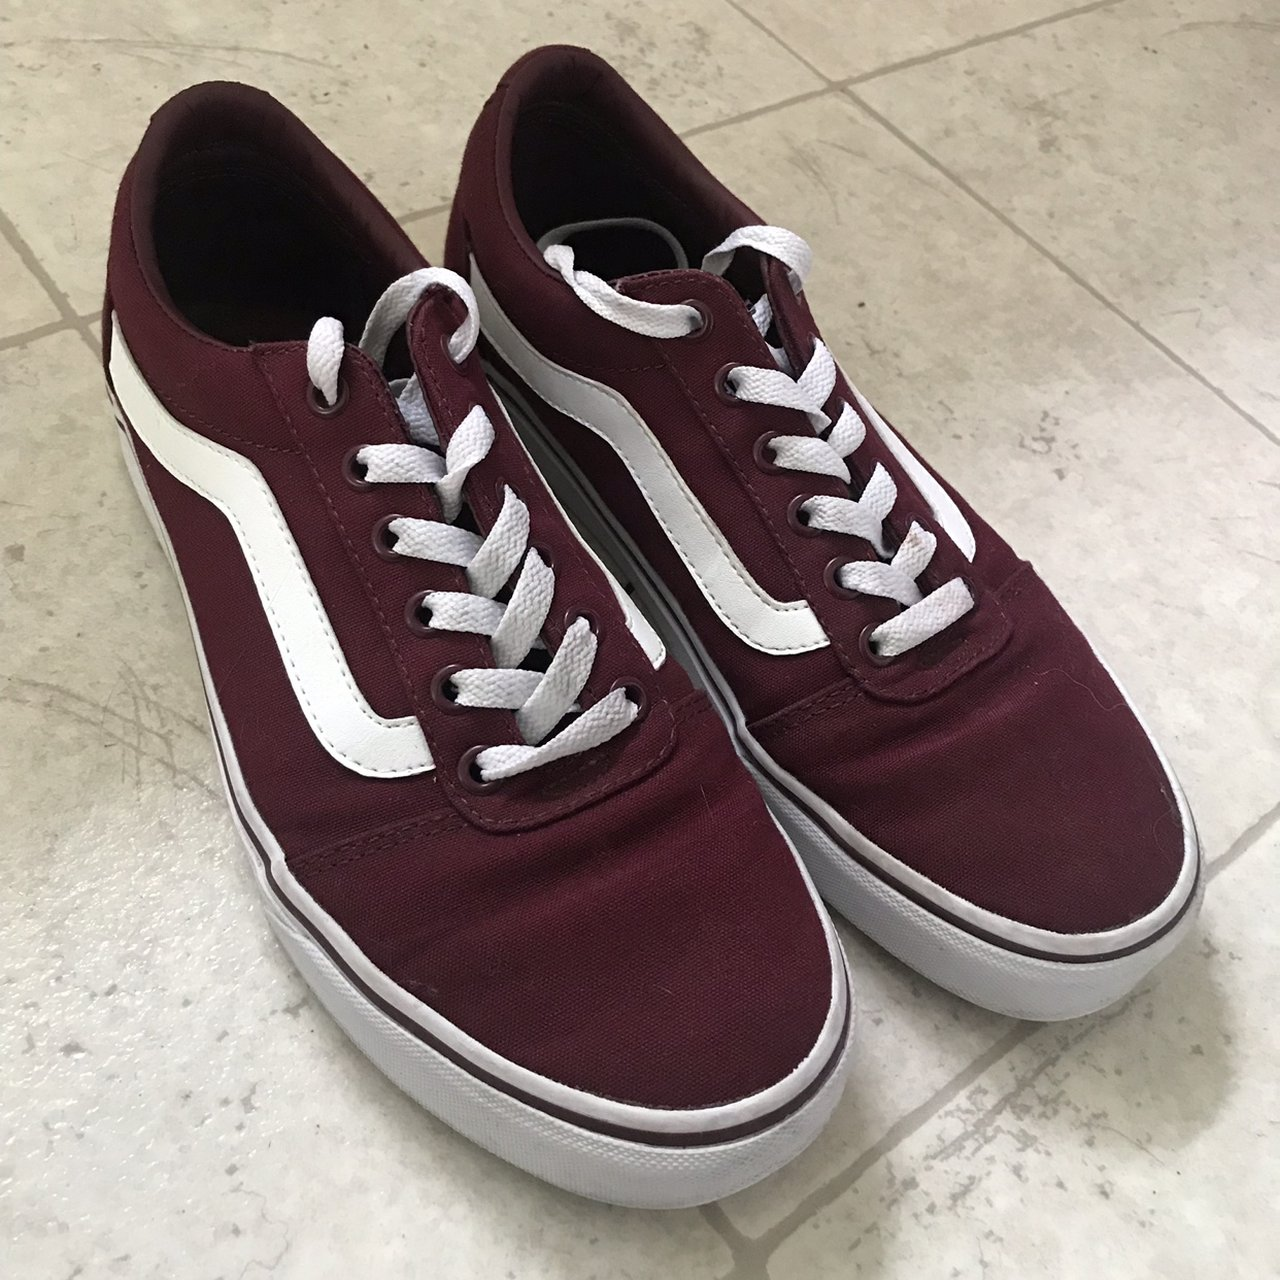 1a376a5d96 maroon vans old skool! hardly worn